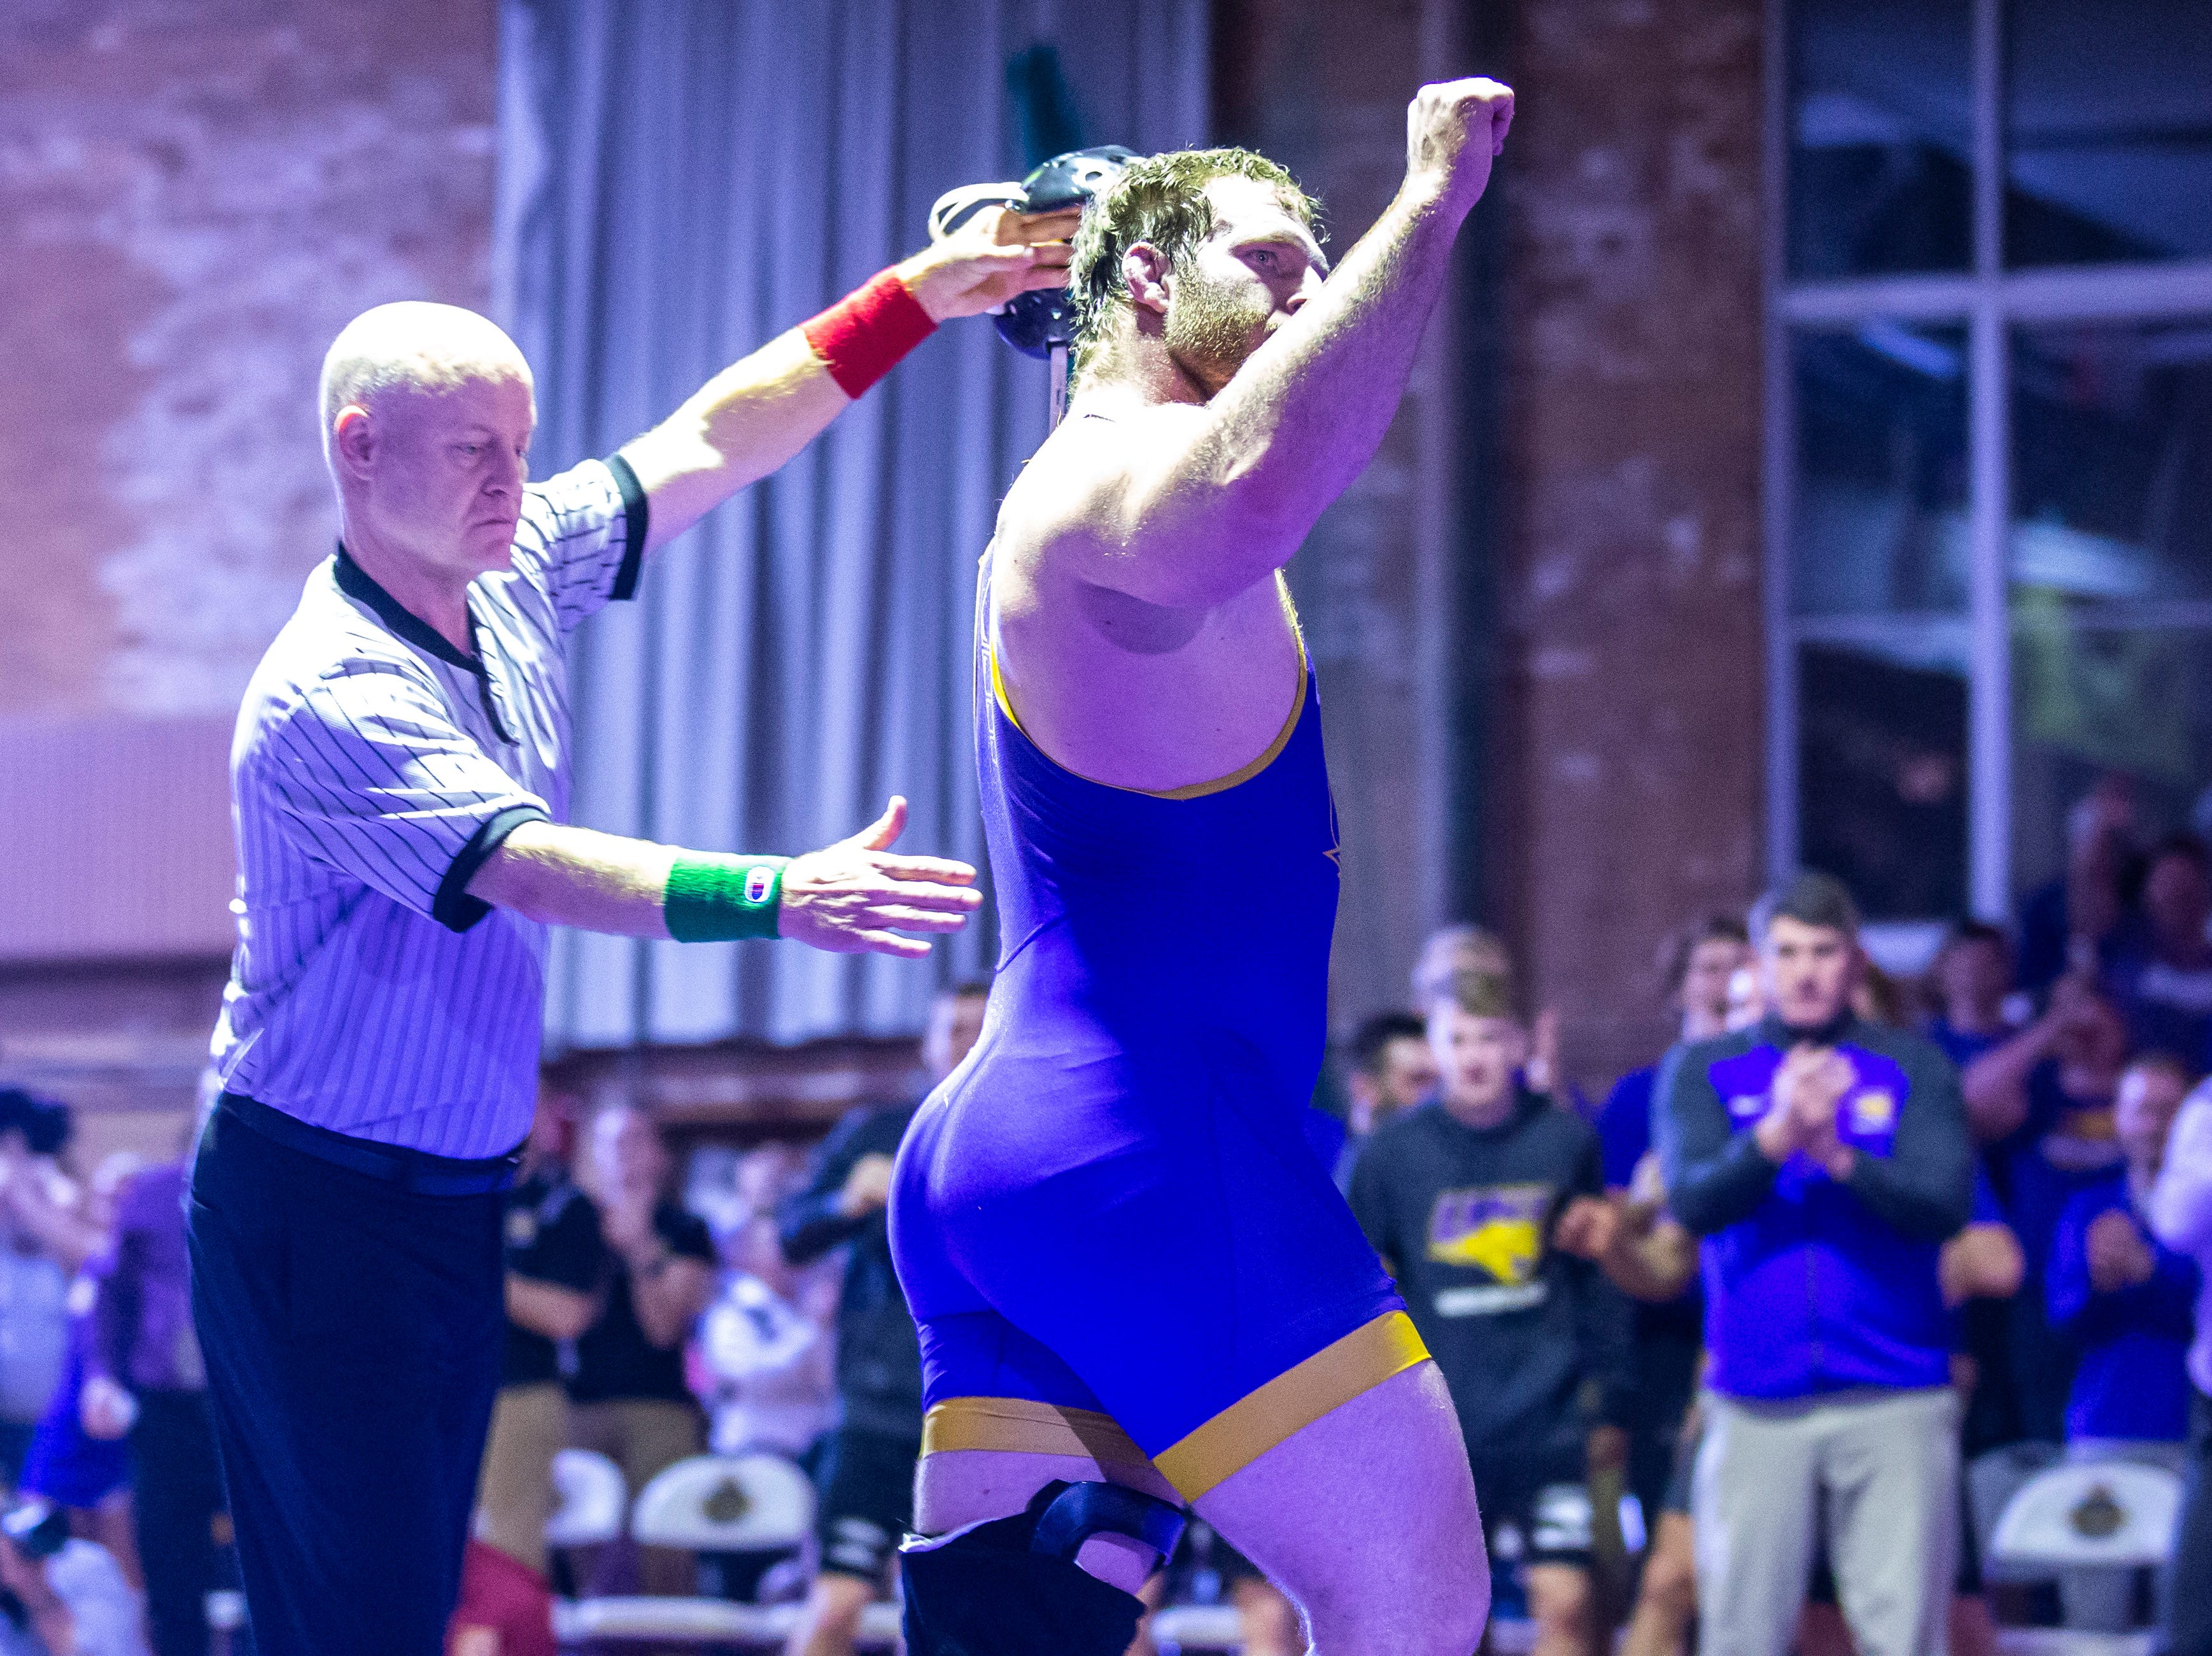 Northern Iowa's Carter Isley celebrates after scoring a takedown on Iowa State's Gannon Gremmel at 285 during a NCAA Big 12 wrestling dual on Thursday, Feb. 21, 2019 at the West Gymnasium in Cedar Falls, Iowa.